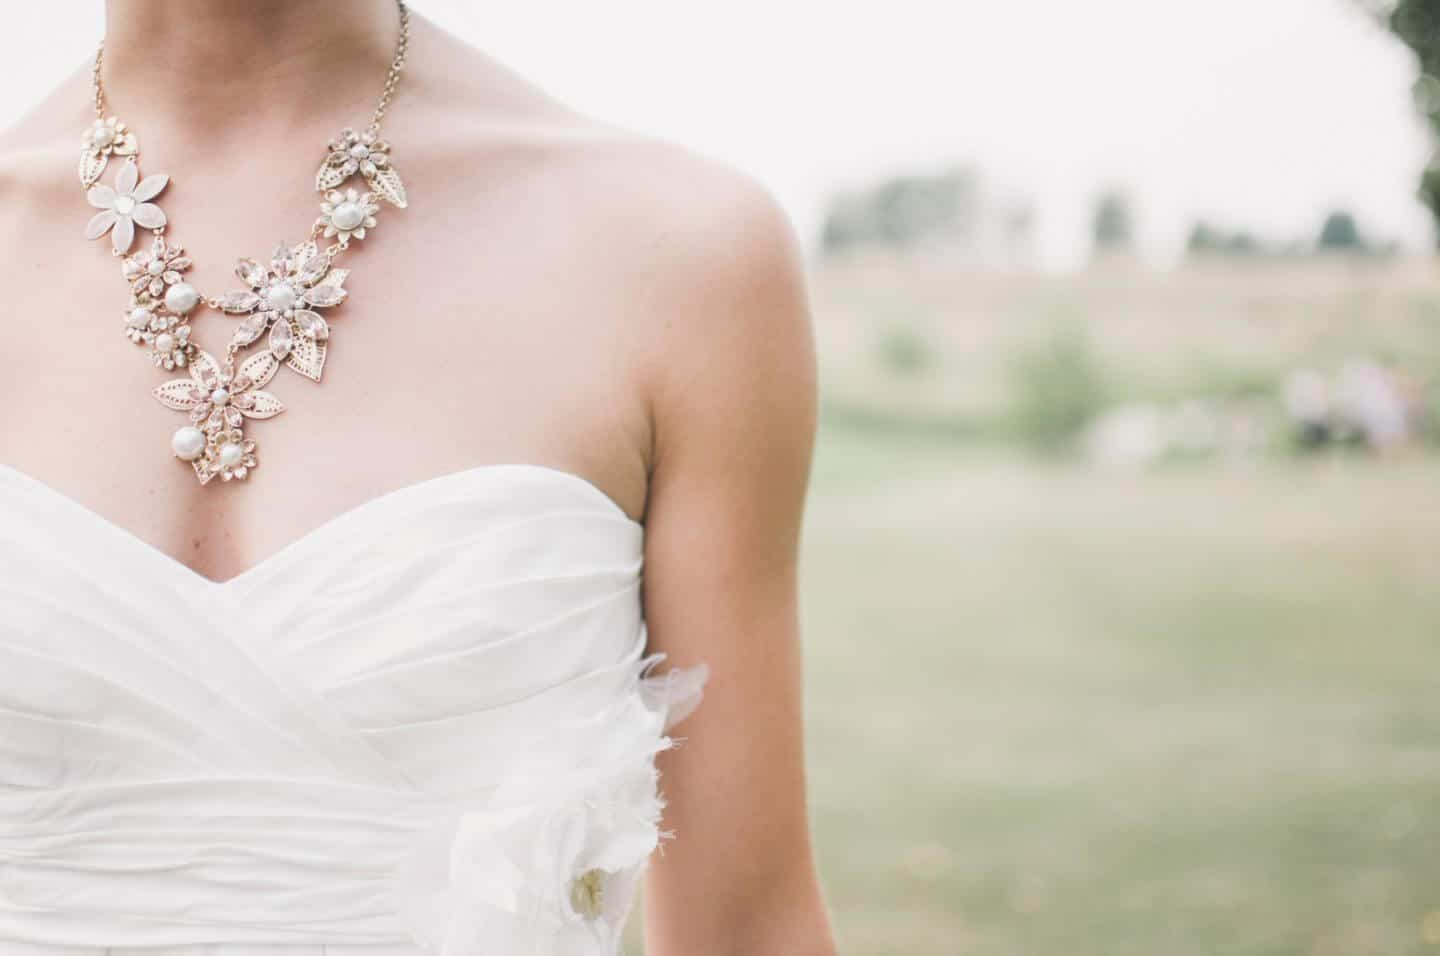 Choosing your wedding jewellery